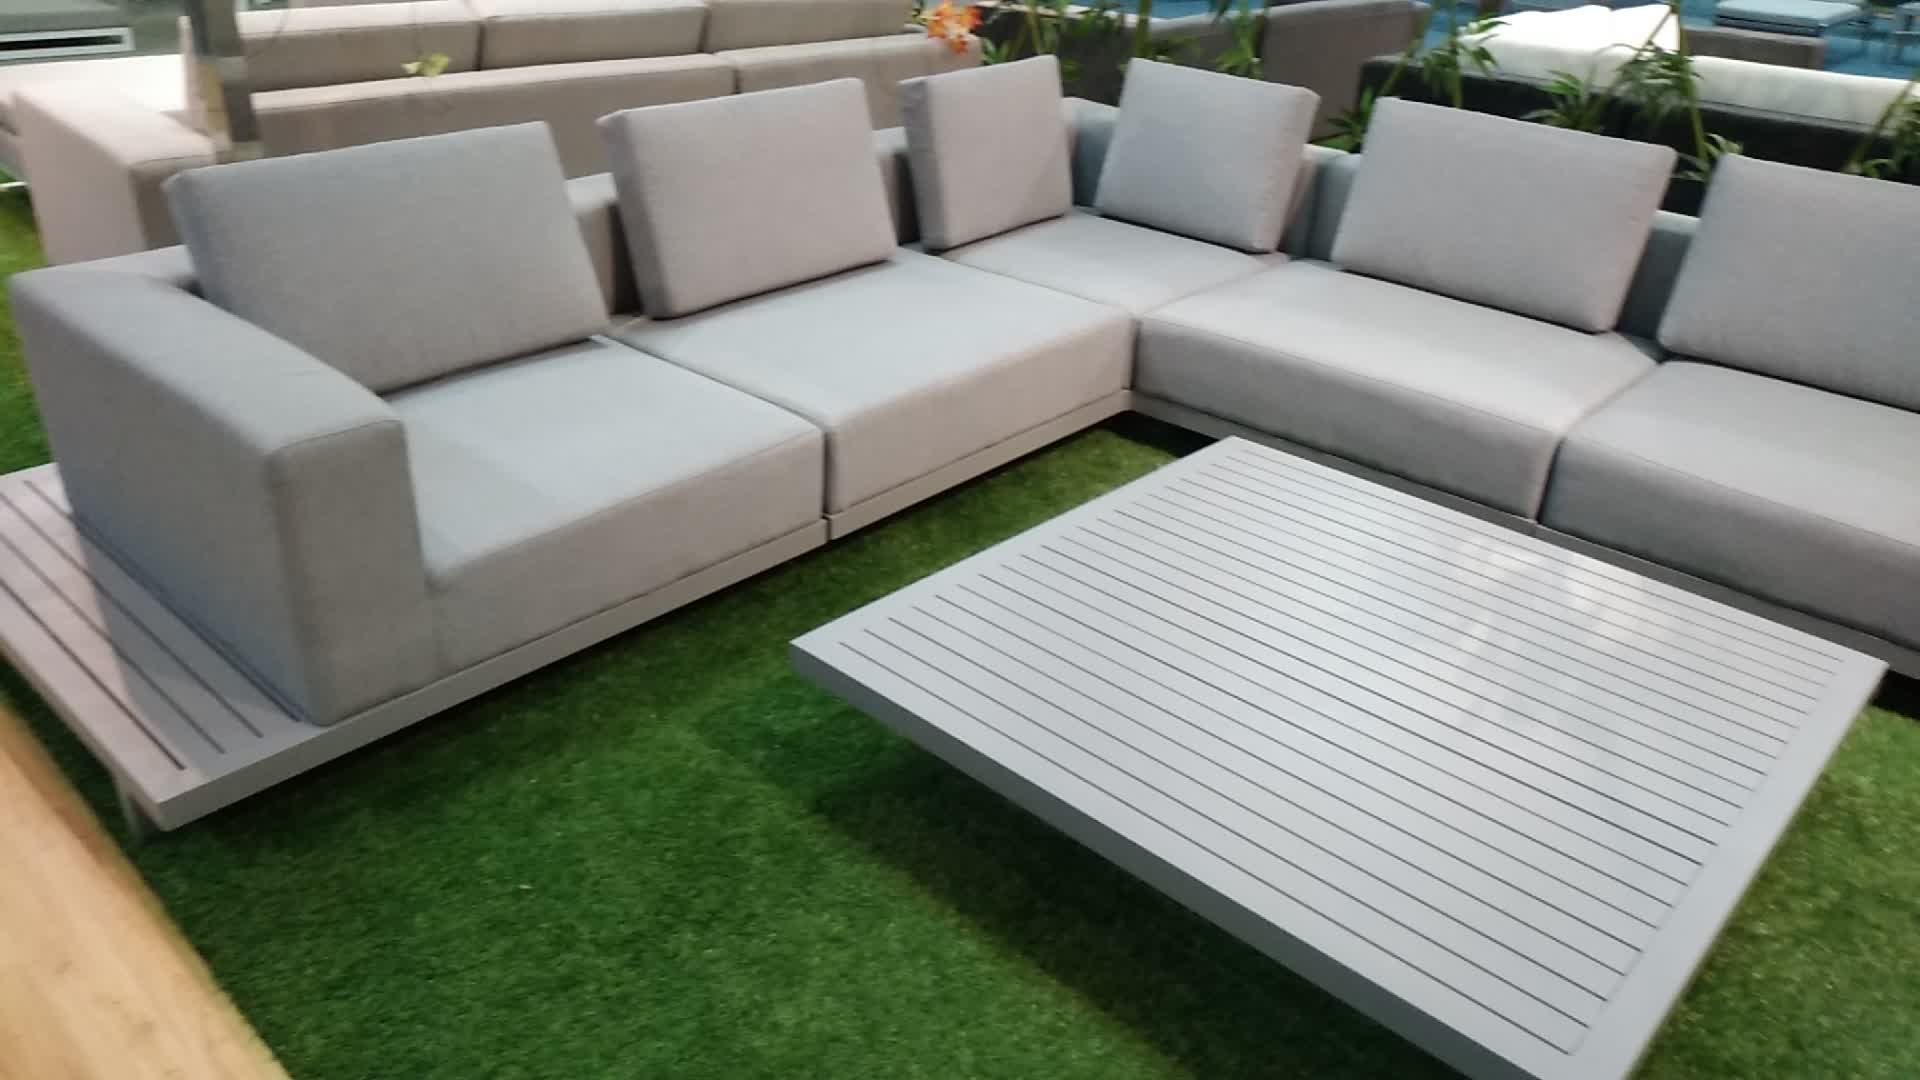 Modern patio aluminum sunbrella fabric sofa garden for Outdoor furniture fabric